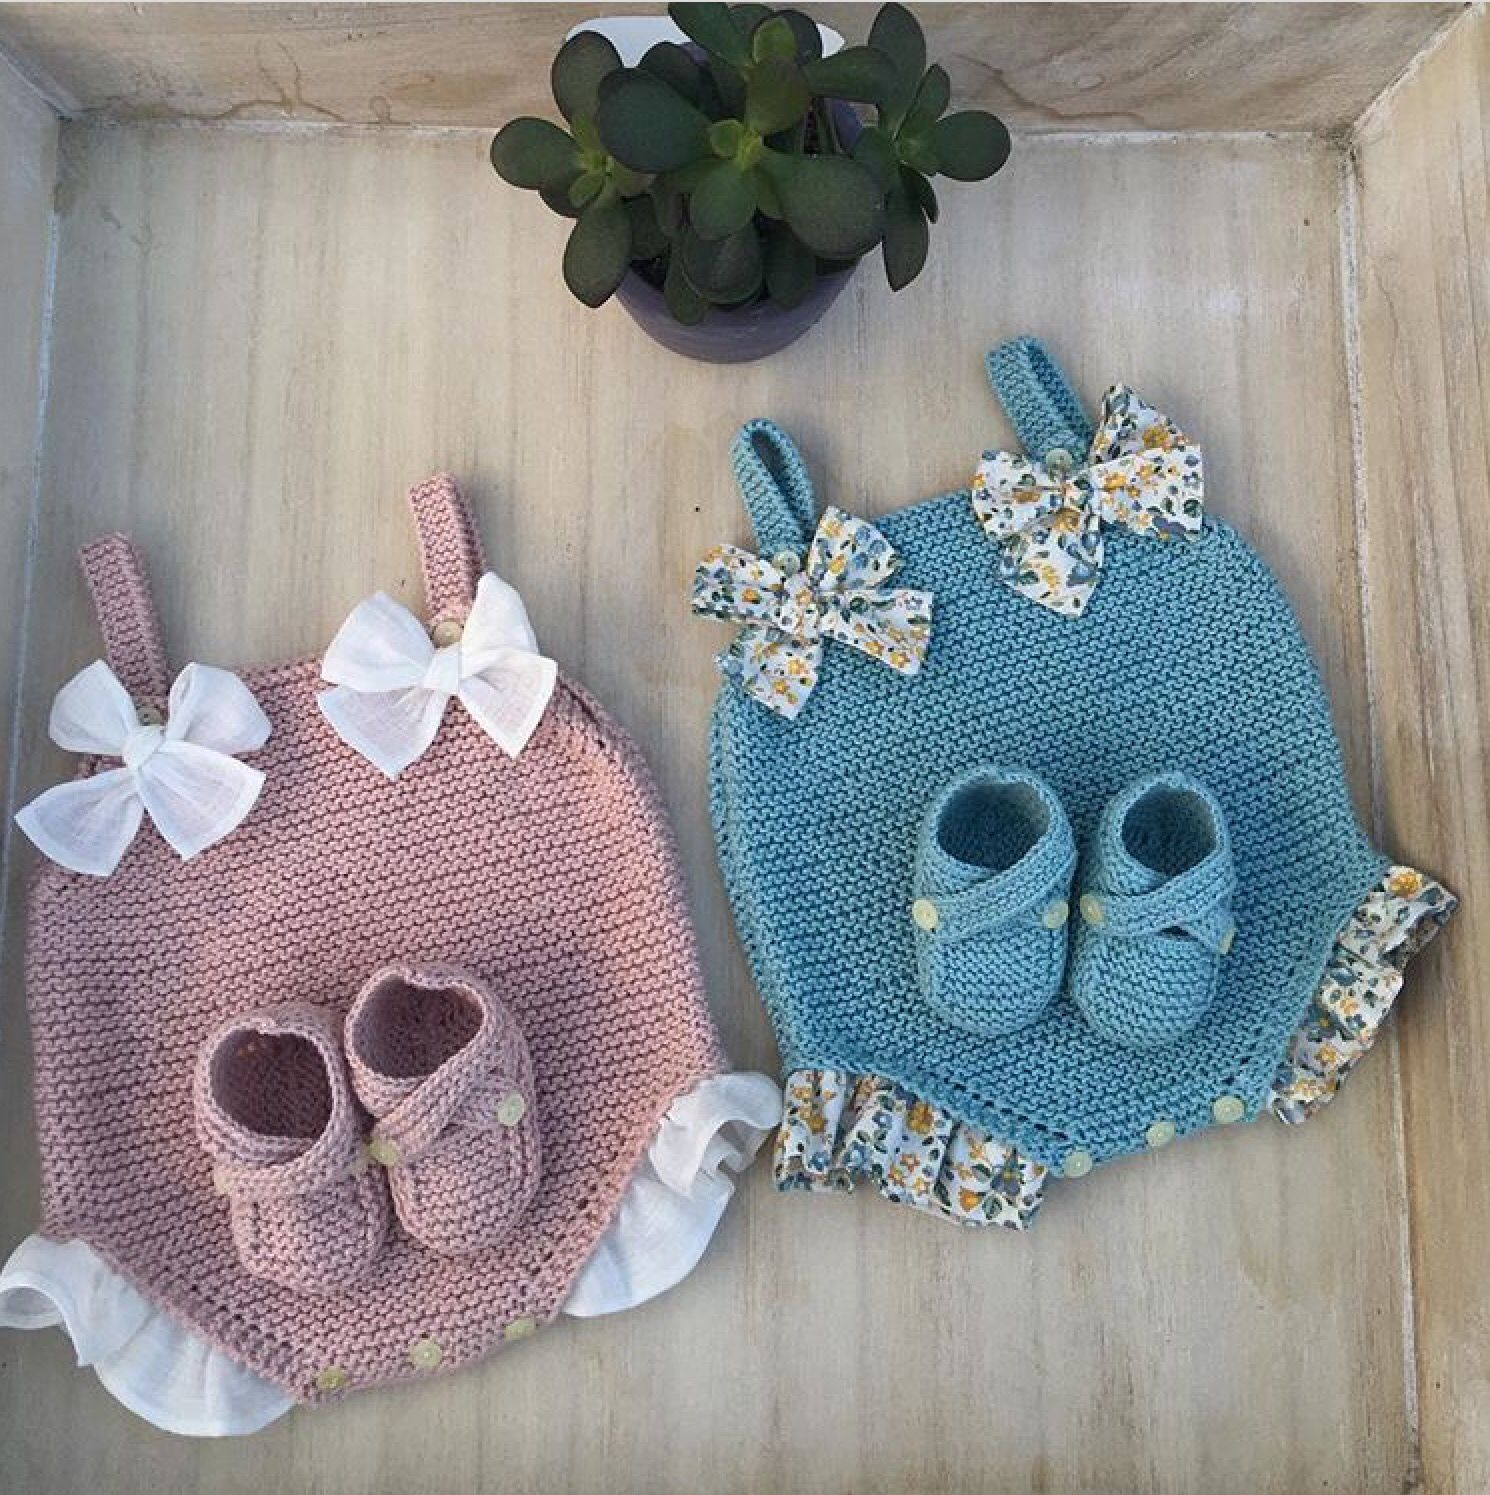 Lina Maestre bebé | My baby tricot | Pinterest | Crochet, Babies and ...